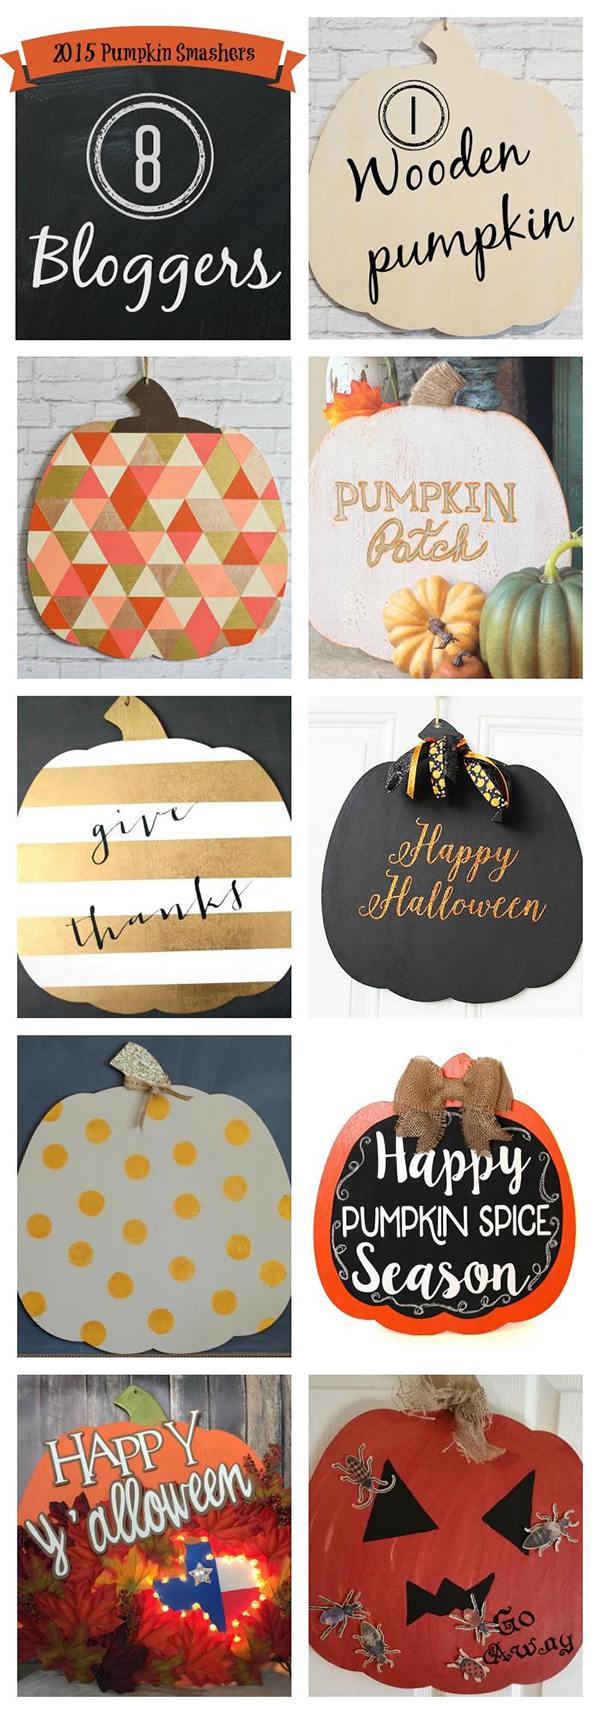 Pumpkin Smashers 2015 - 8 Awesome Pumpkin Decorations